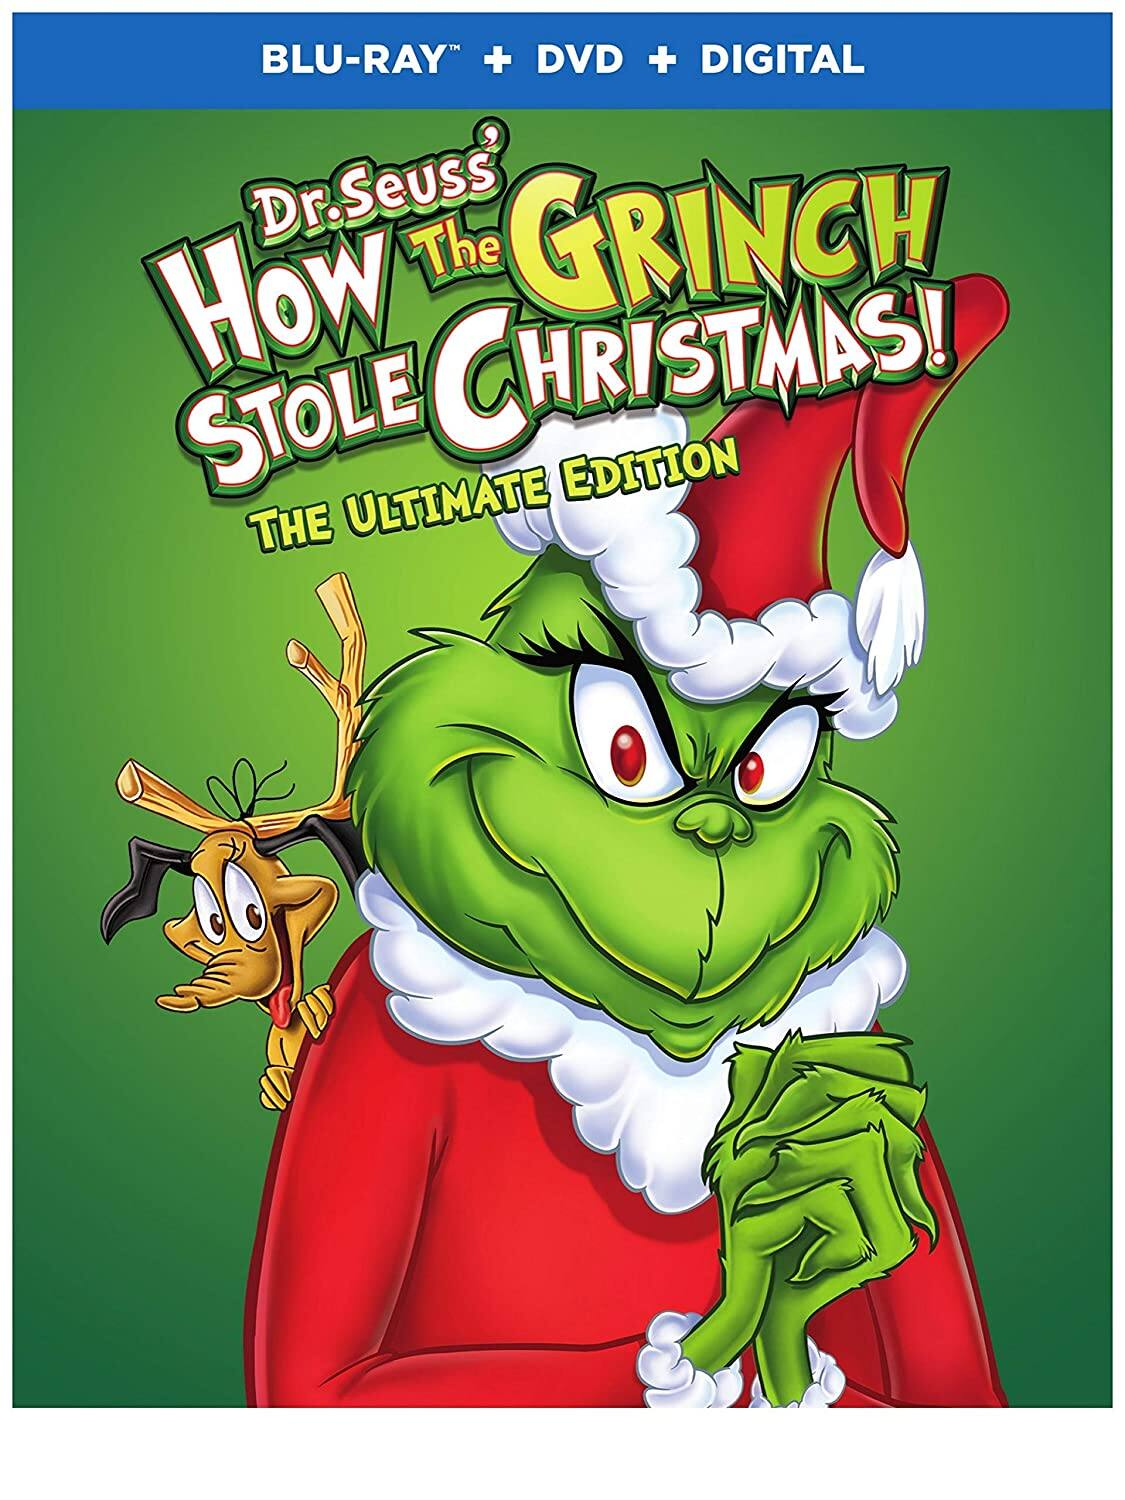 How the Grinch Stole Christmas: Ultimate Edition (Blu-ray + DVD + Digital)